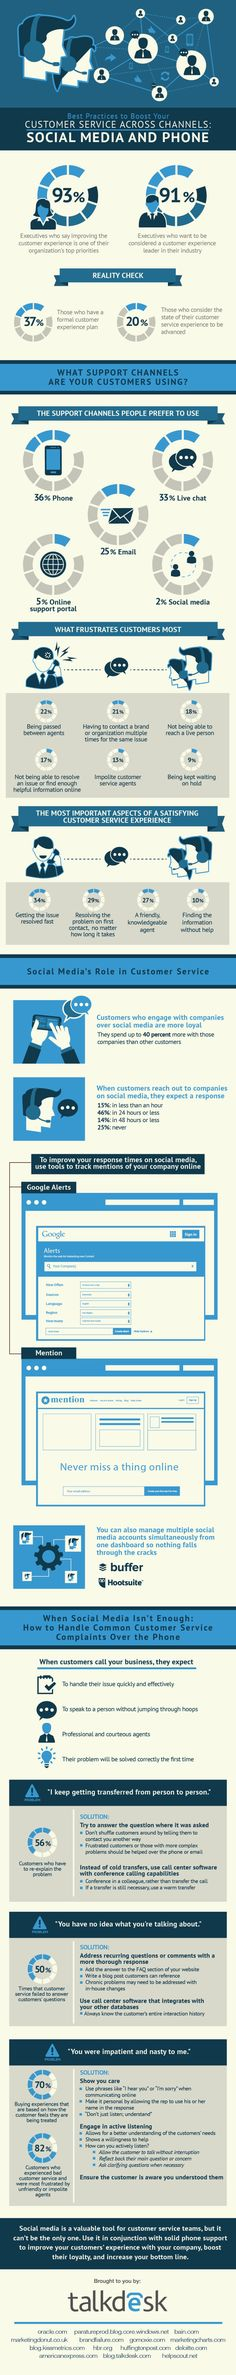 an infographic showing you how to boost customer service across channels.